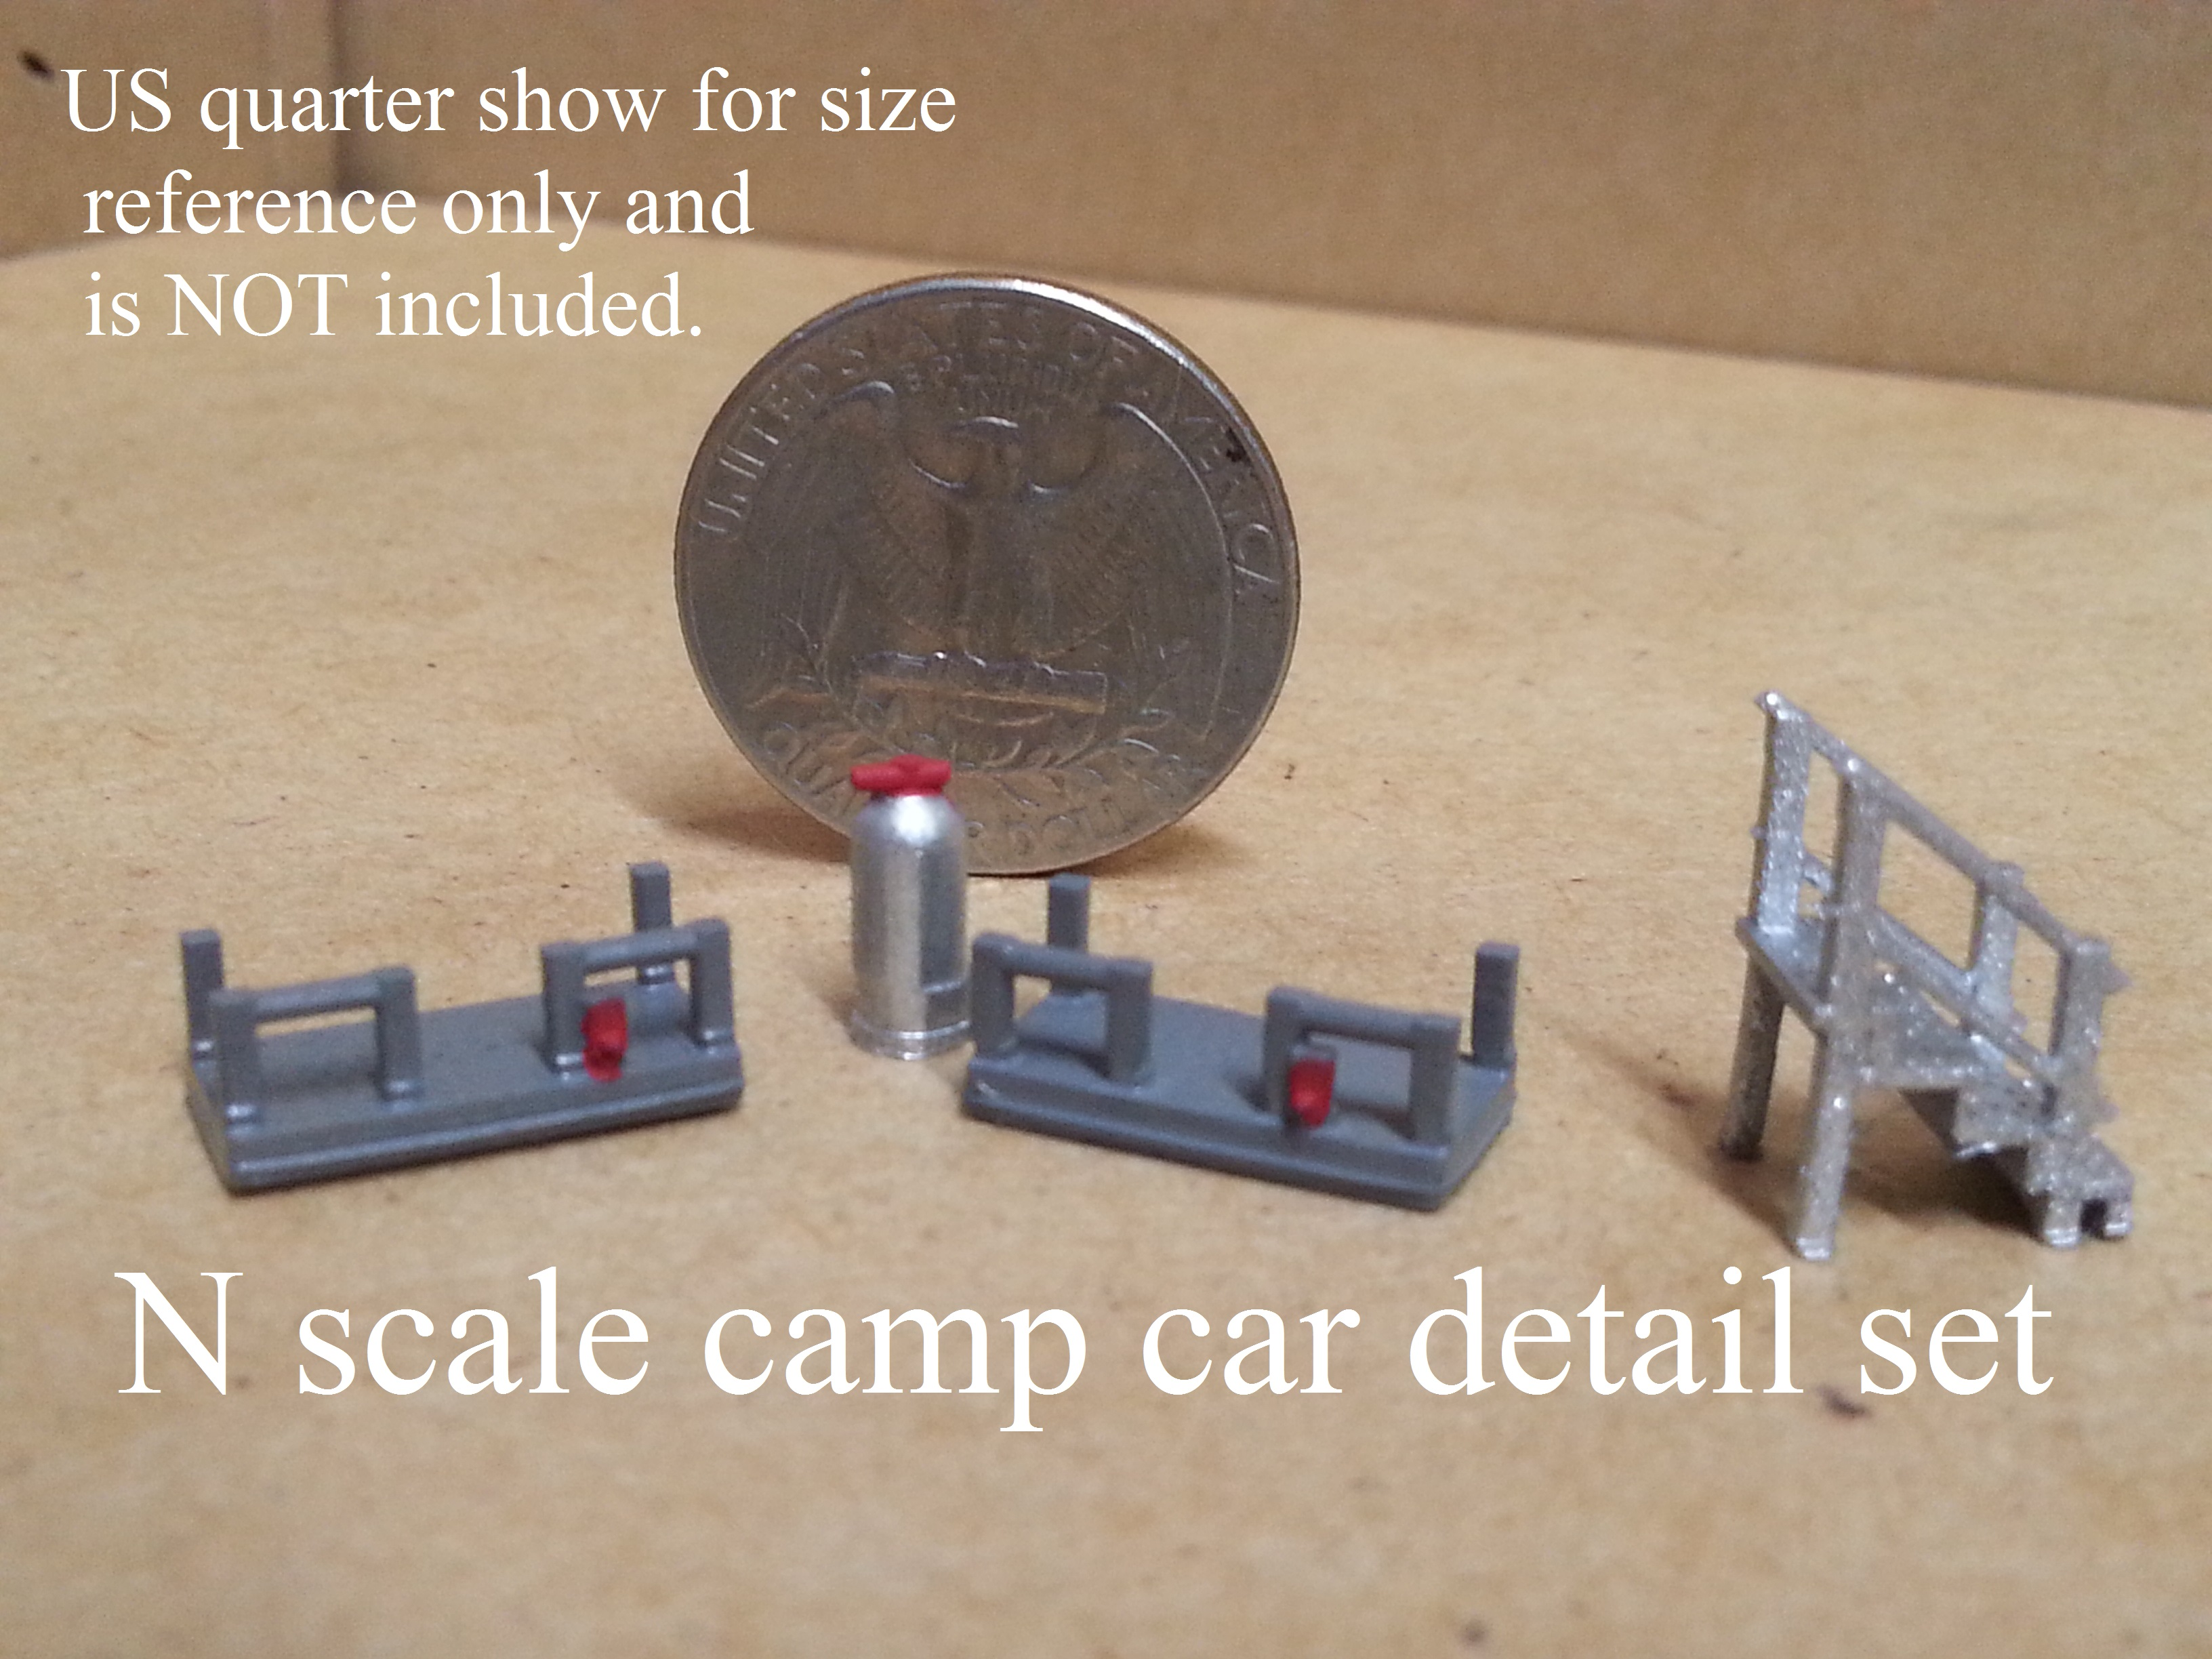 N scale M of W camp car detail set